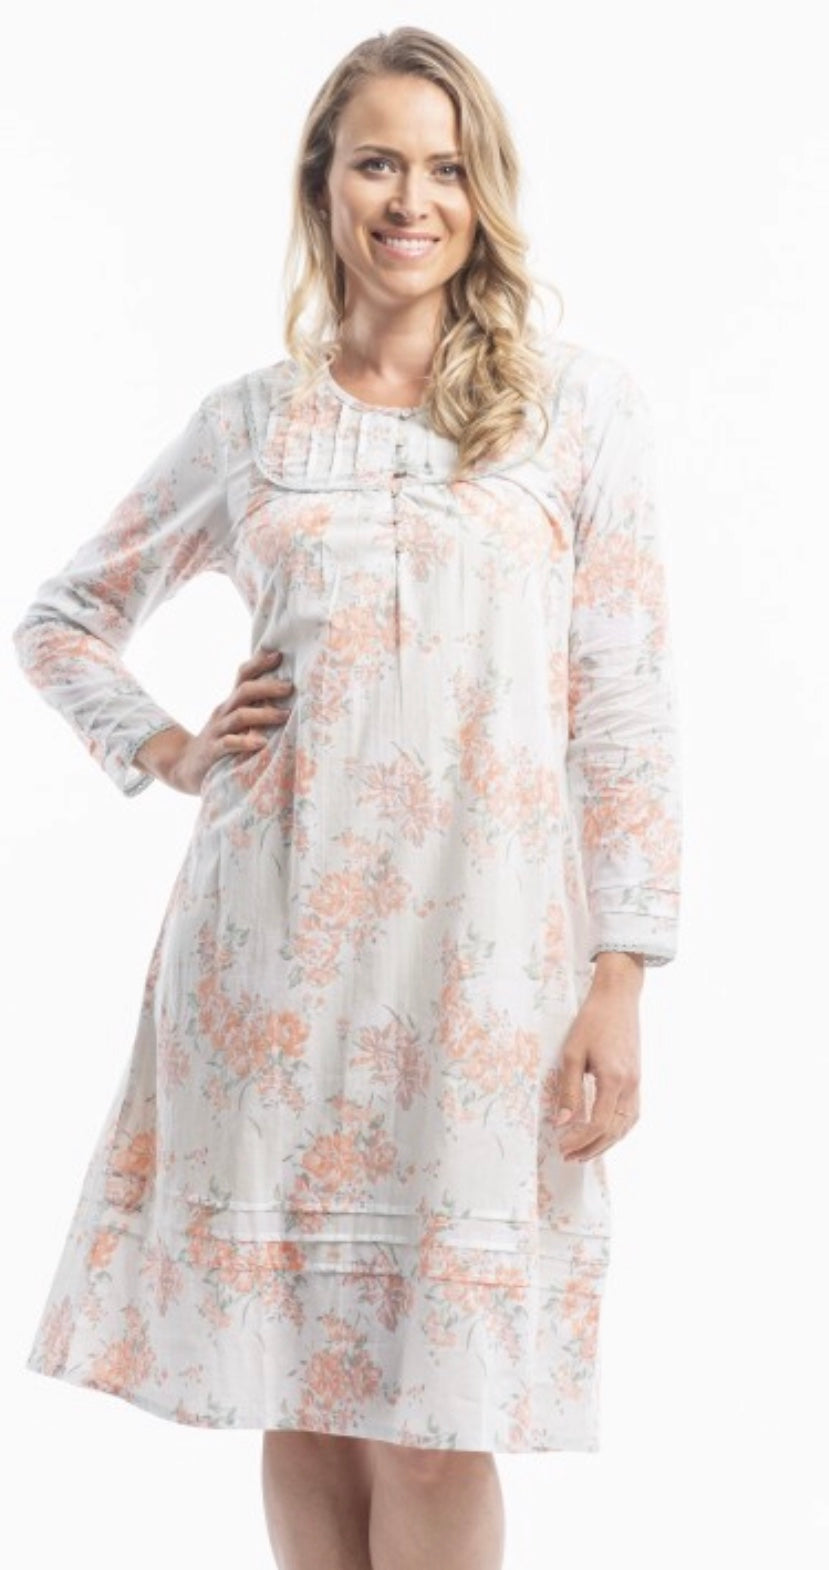 Orientique Victoria's Dreams Orchid print cotton nightie 22530k